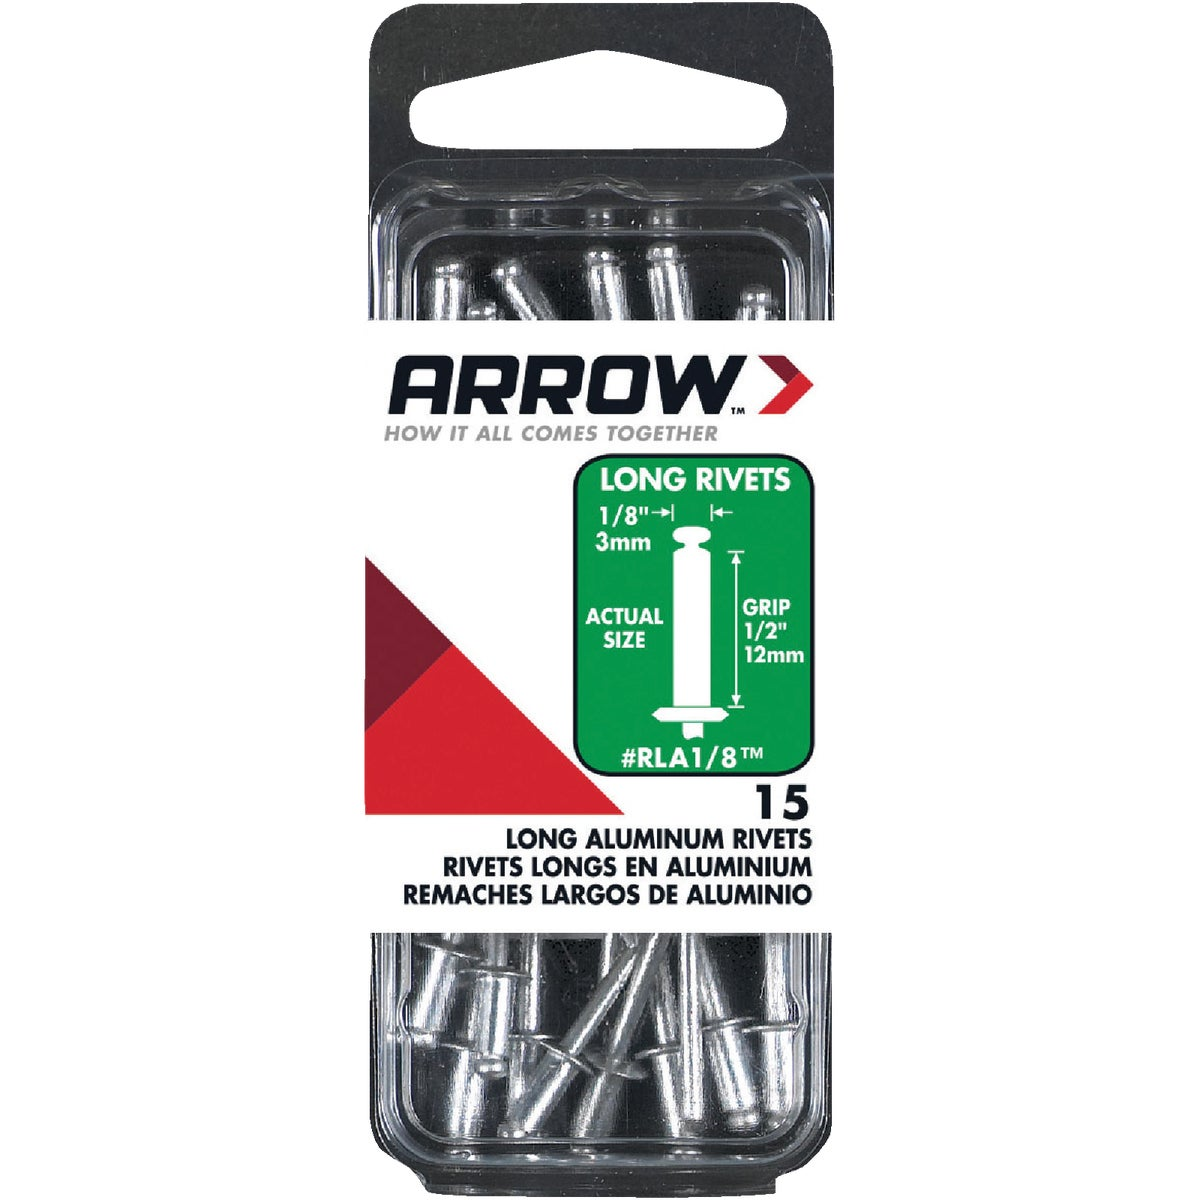 1/8X1/2 ALUM RIVET - RLA1/8 by Arrow Fastener Co